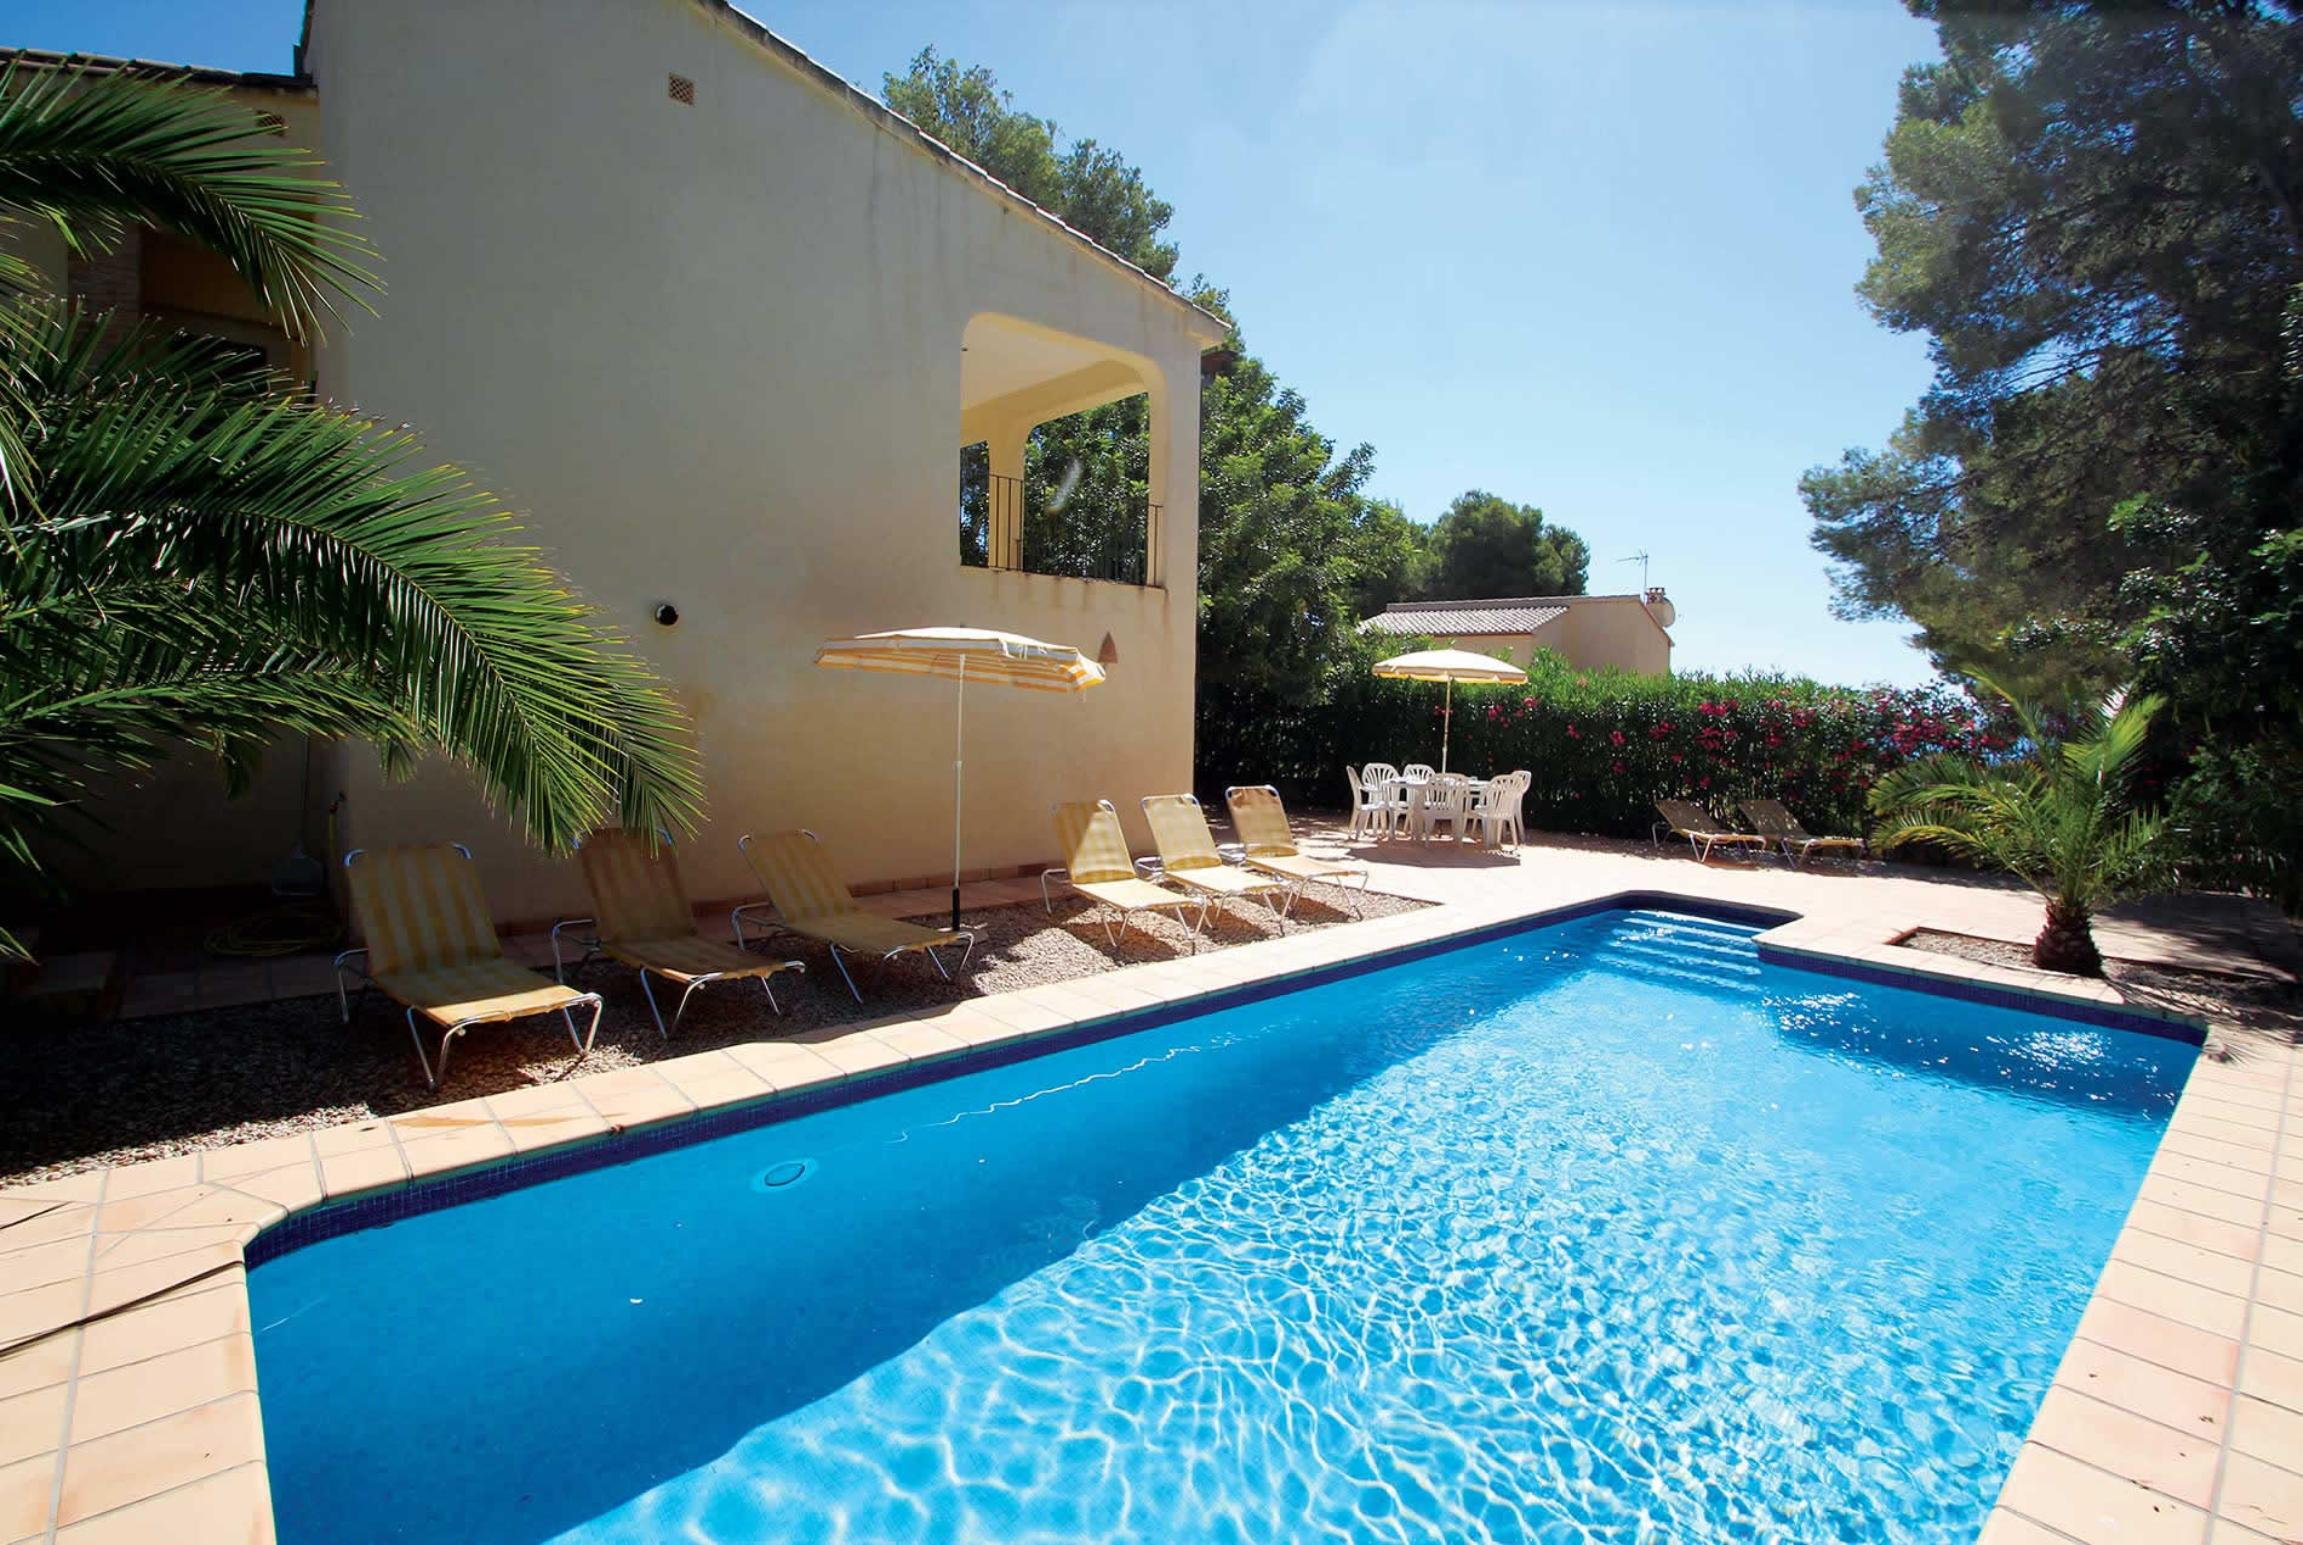 Read more about El Pinar villa